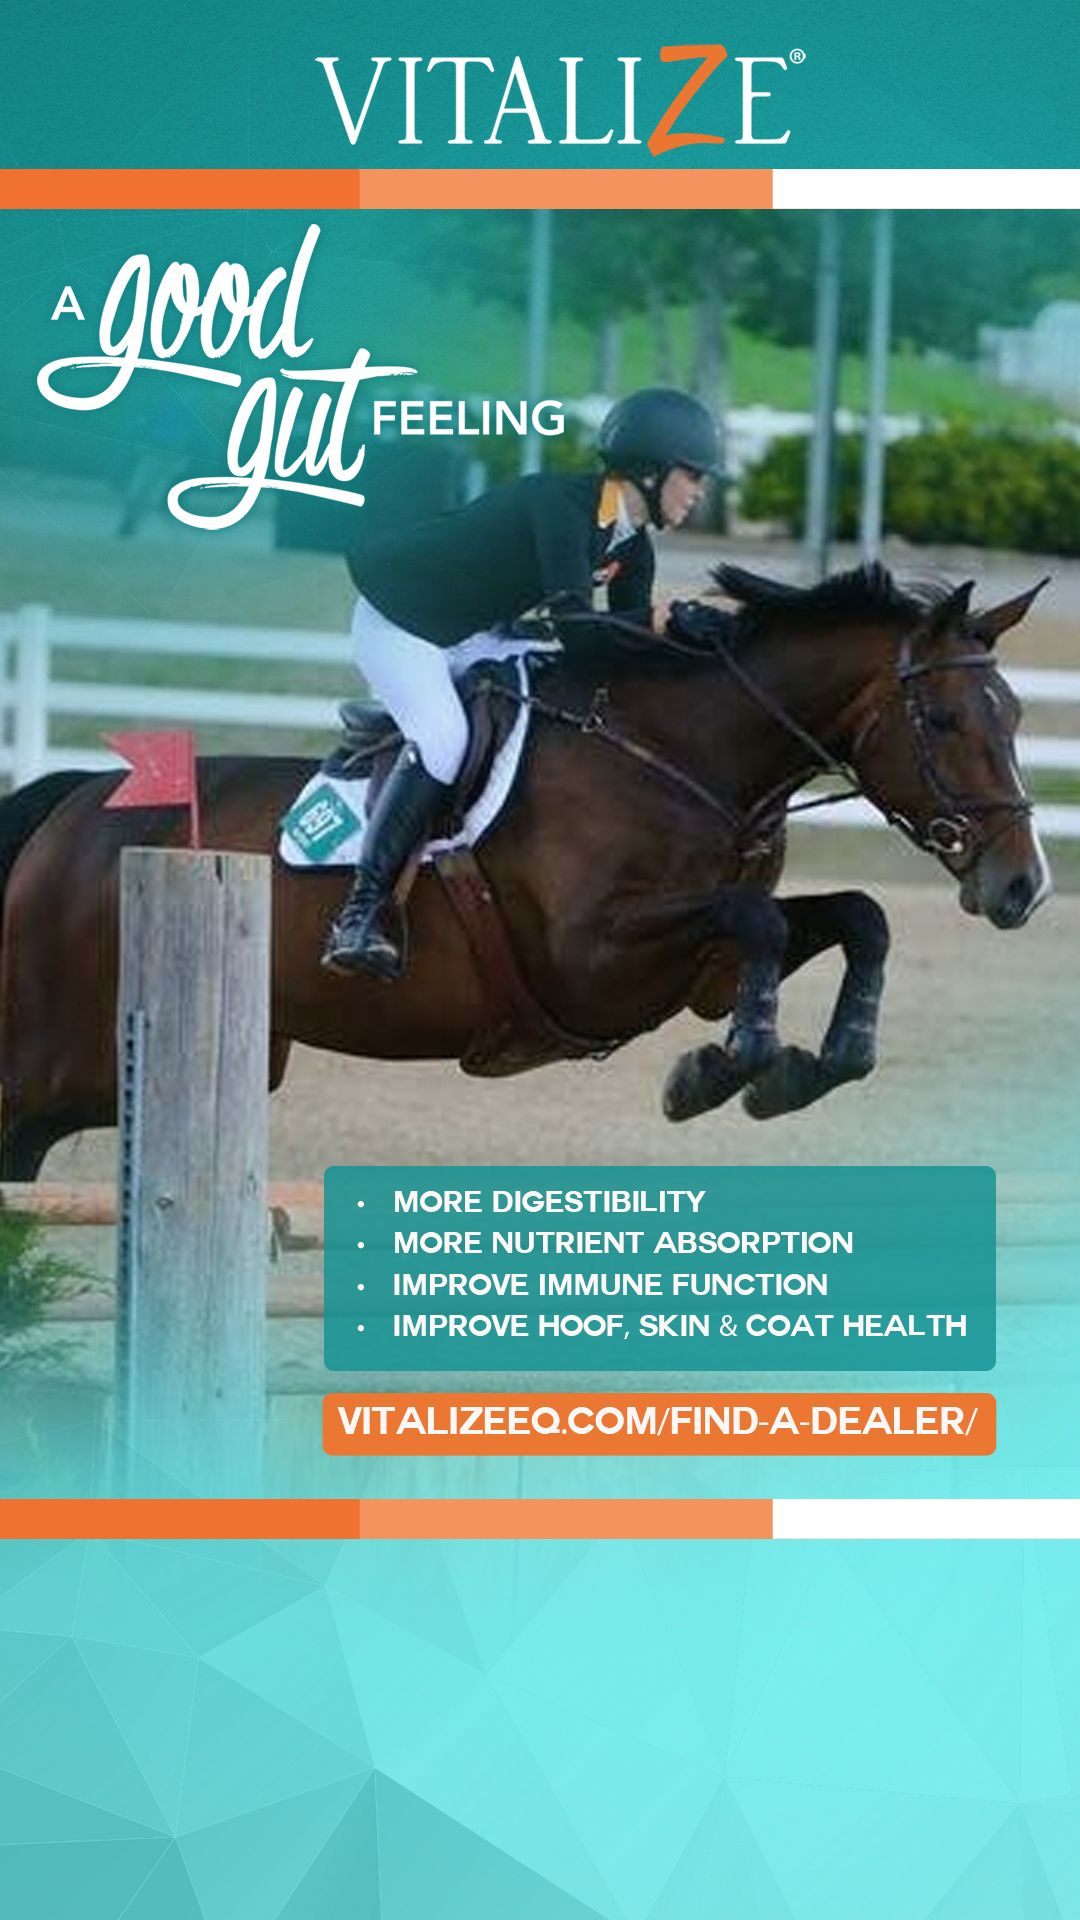 Where to Buy Vitalize Horse supplements, Equines